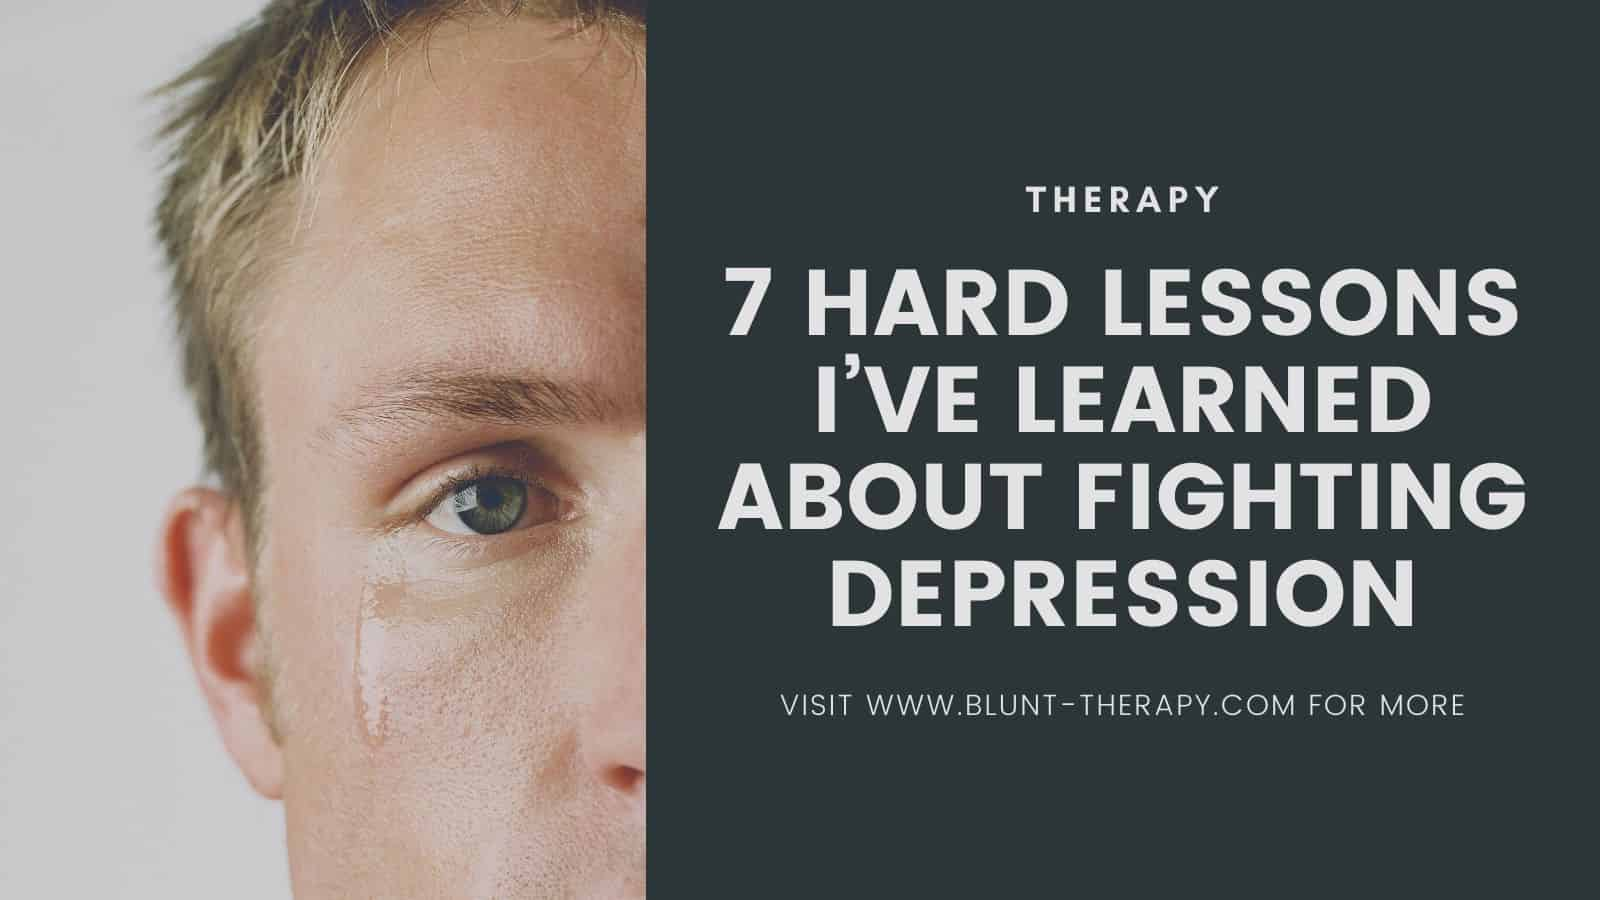 7 Hard lessons I've Learned About Fighting Depression